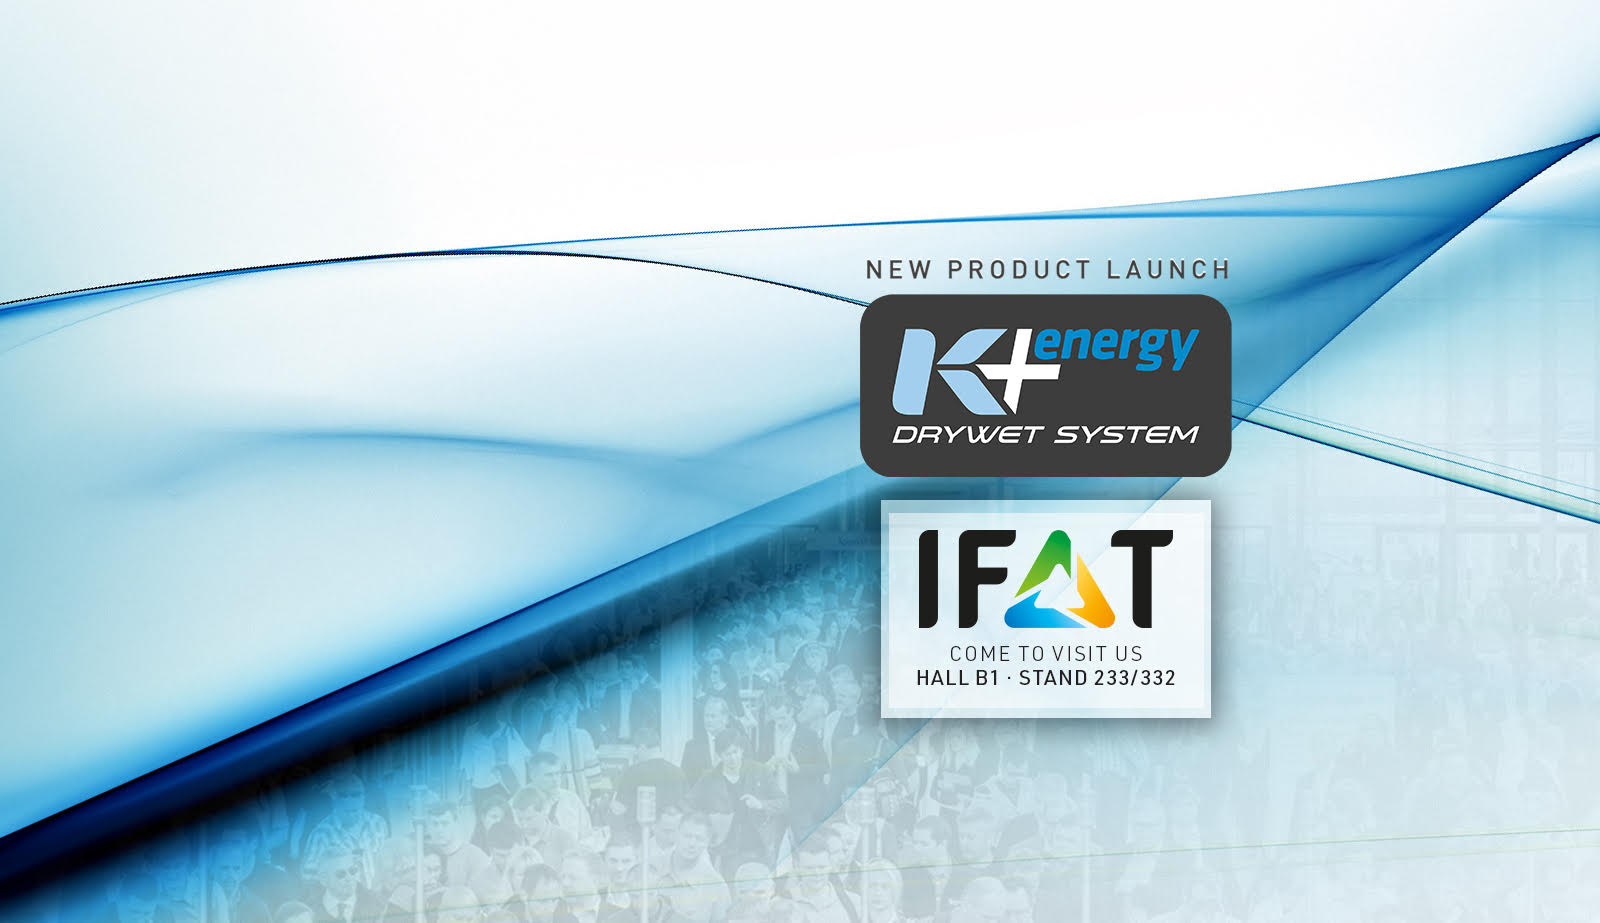 Caprari product innovation protagonist at IFAT